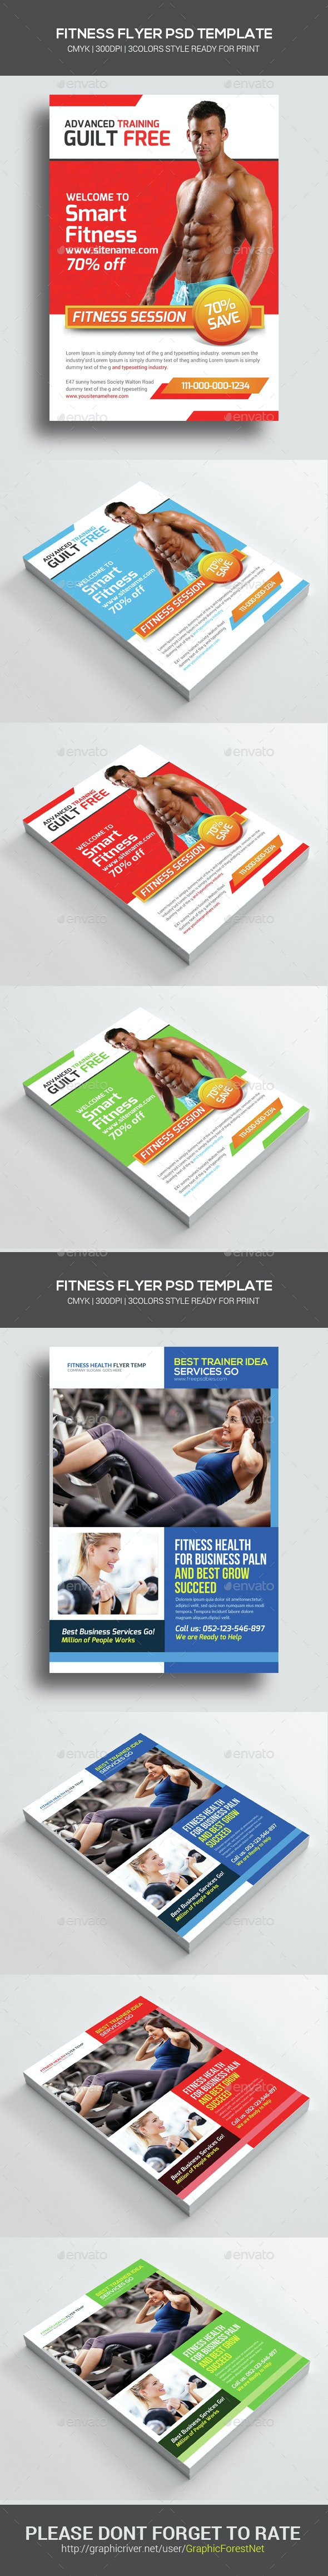 Health & Fitness Flyers Bundle - Corporate Flyers